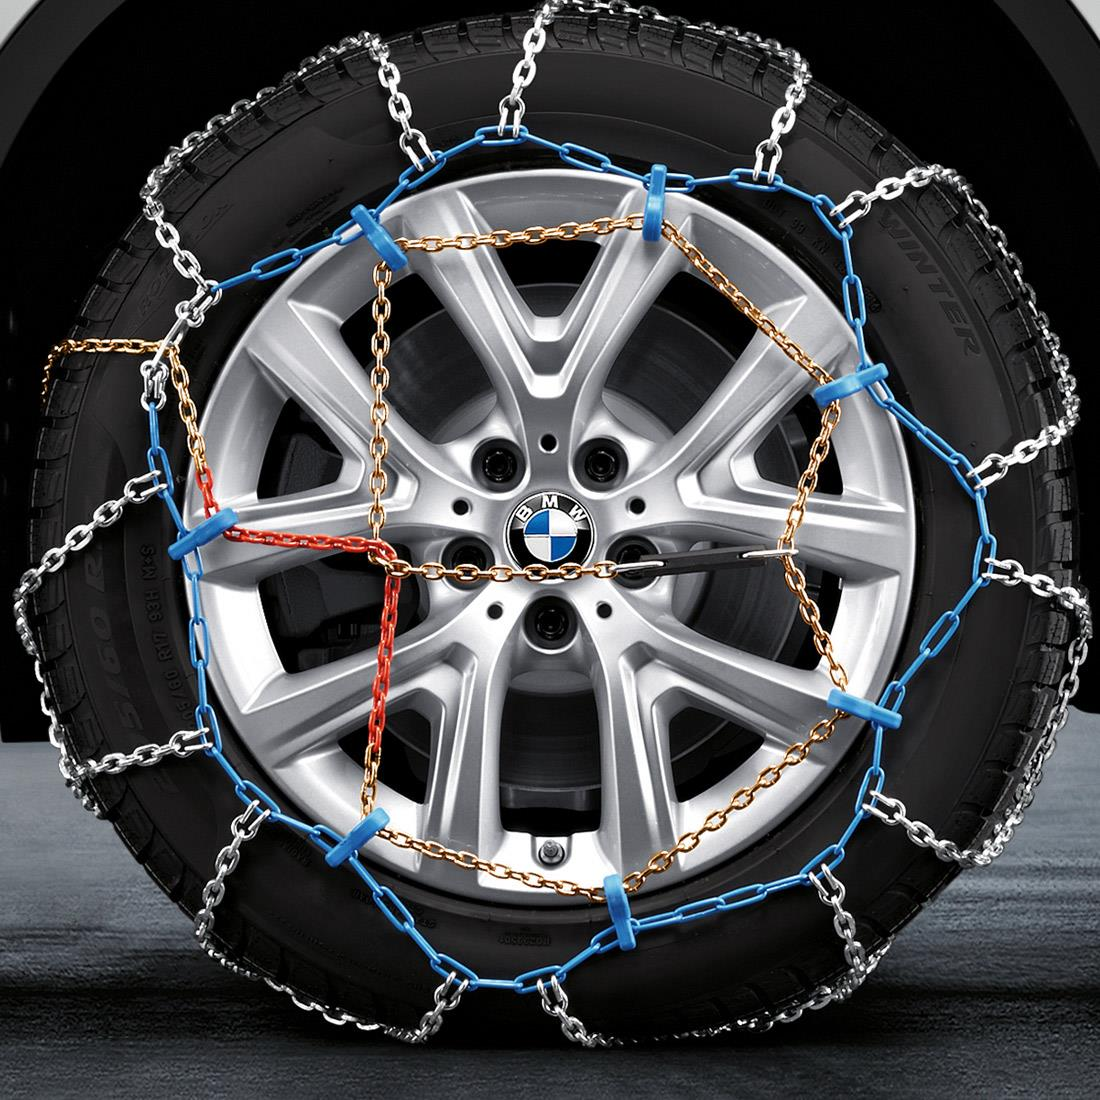 BMW Snow Chain System - 195/55R17